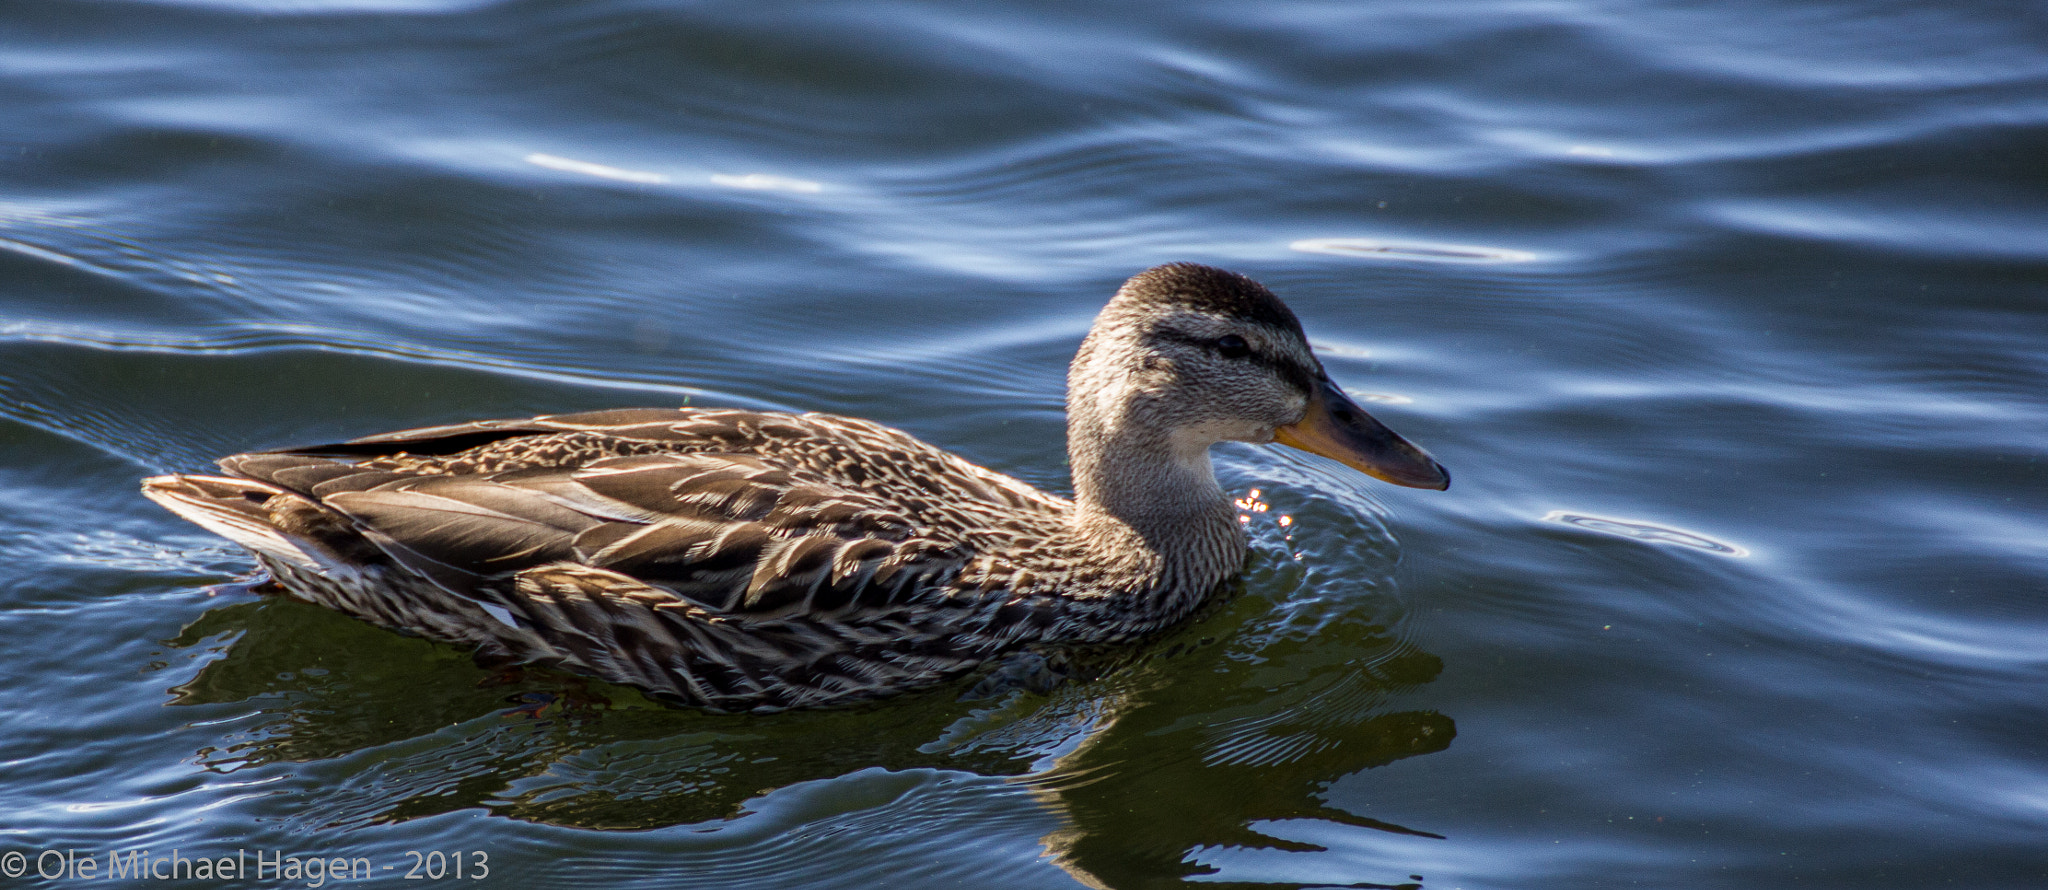 Photograph Duck by Ole Michael Hagen on 500px